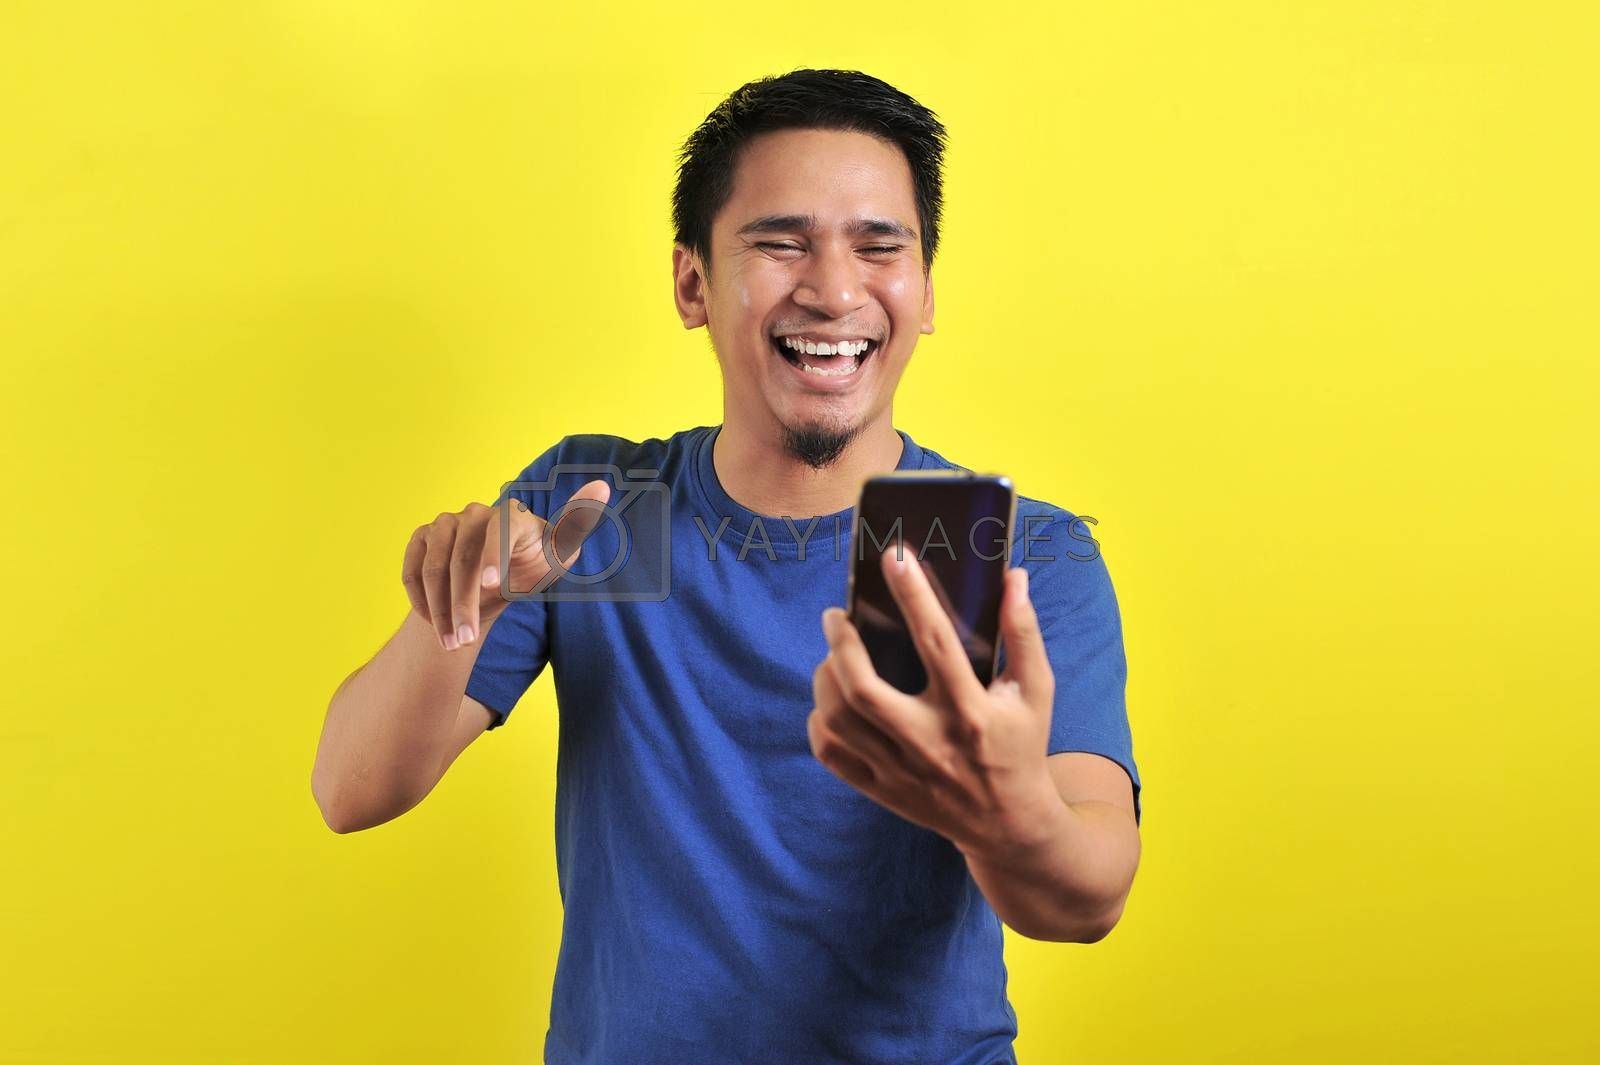 Happy of young good looking Asian man smiling using smartphone by heruan1507